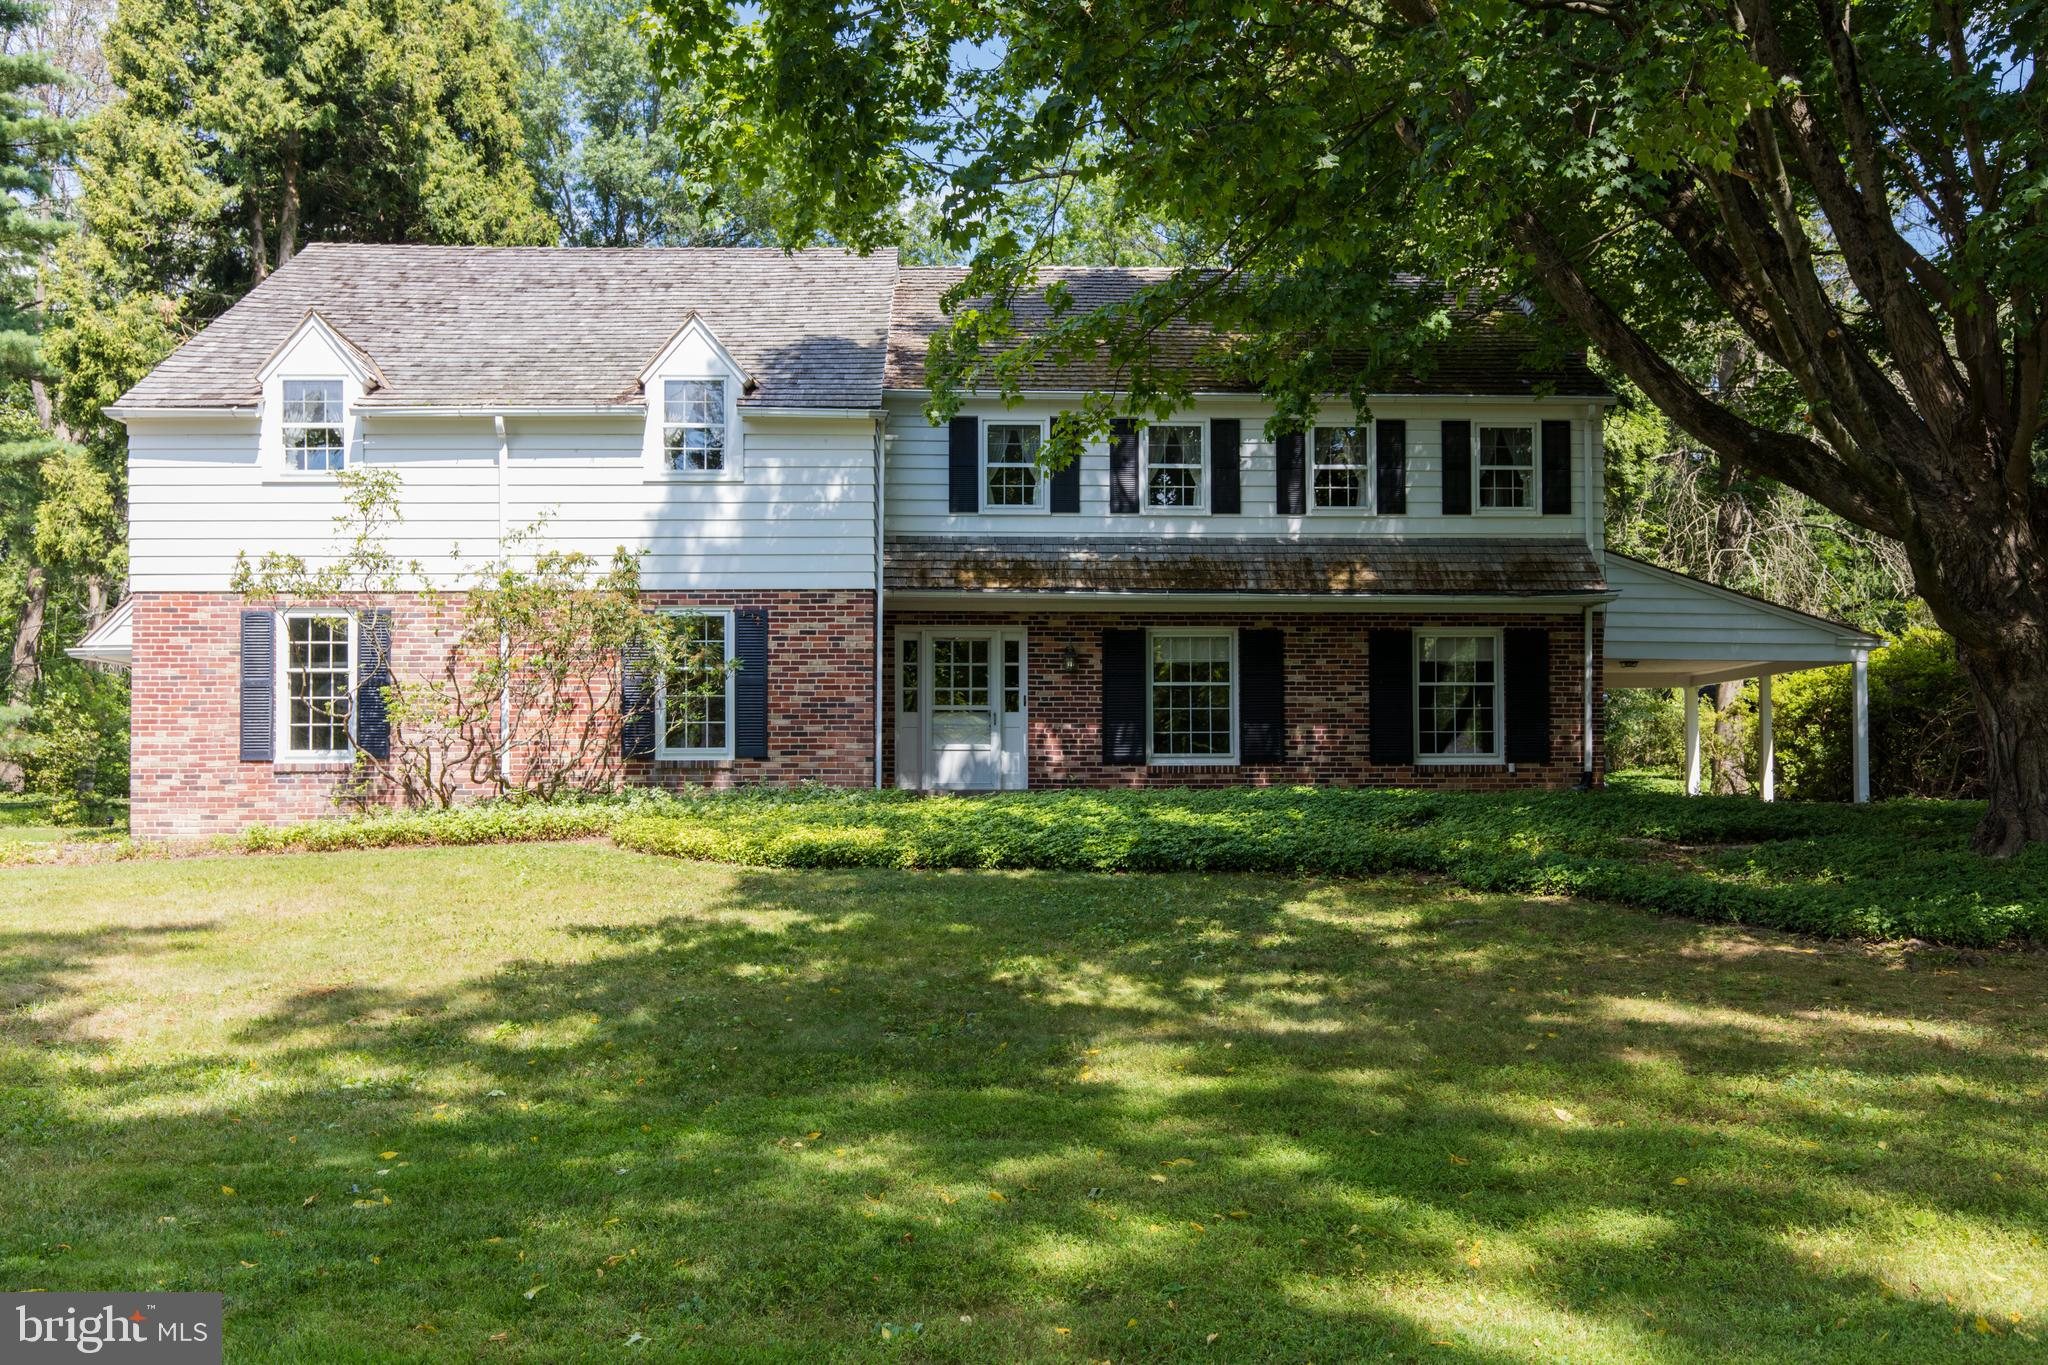 This attractive Colonial sits on a one acre level lot in a highly sought after Devon neighborhood.  The 3,148 sq. ft. house, built in 1964, features 5 bedrooms, 3 1/2 bathrooms, a family room, 2 outdoor porches and an attached 2 car garage.  Both the living room and family room have wood burning fireplaces.  The house has what many consider the ideal HVAC setup, with a natural gas fired hot water baseboard heating system and a separate high velocity central air conditioning system. There is a laundry room adjacent to the eat in kitchen with a rear door leading to a screened in porch with a brick floor.  A rear brick patio and a covered side porch are perfect for families and entertaining.  This house is ideal for a family looking for a beautiful Devon property with low taxes and the award winning TE School District.  Don't miss this opportunity to own this wonderful home in an ideal Devon location.